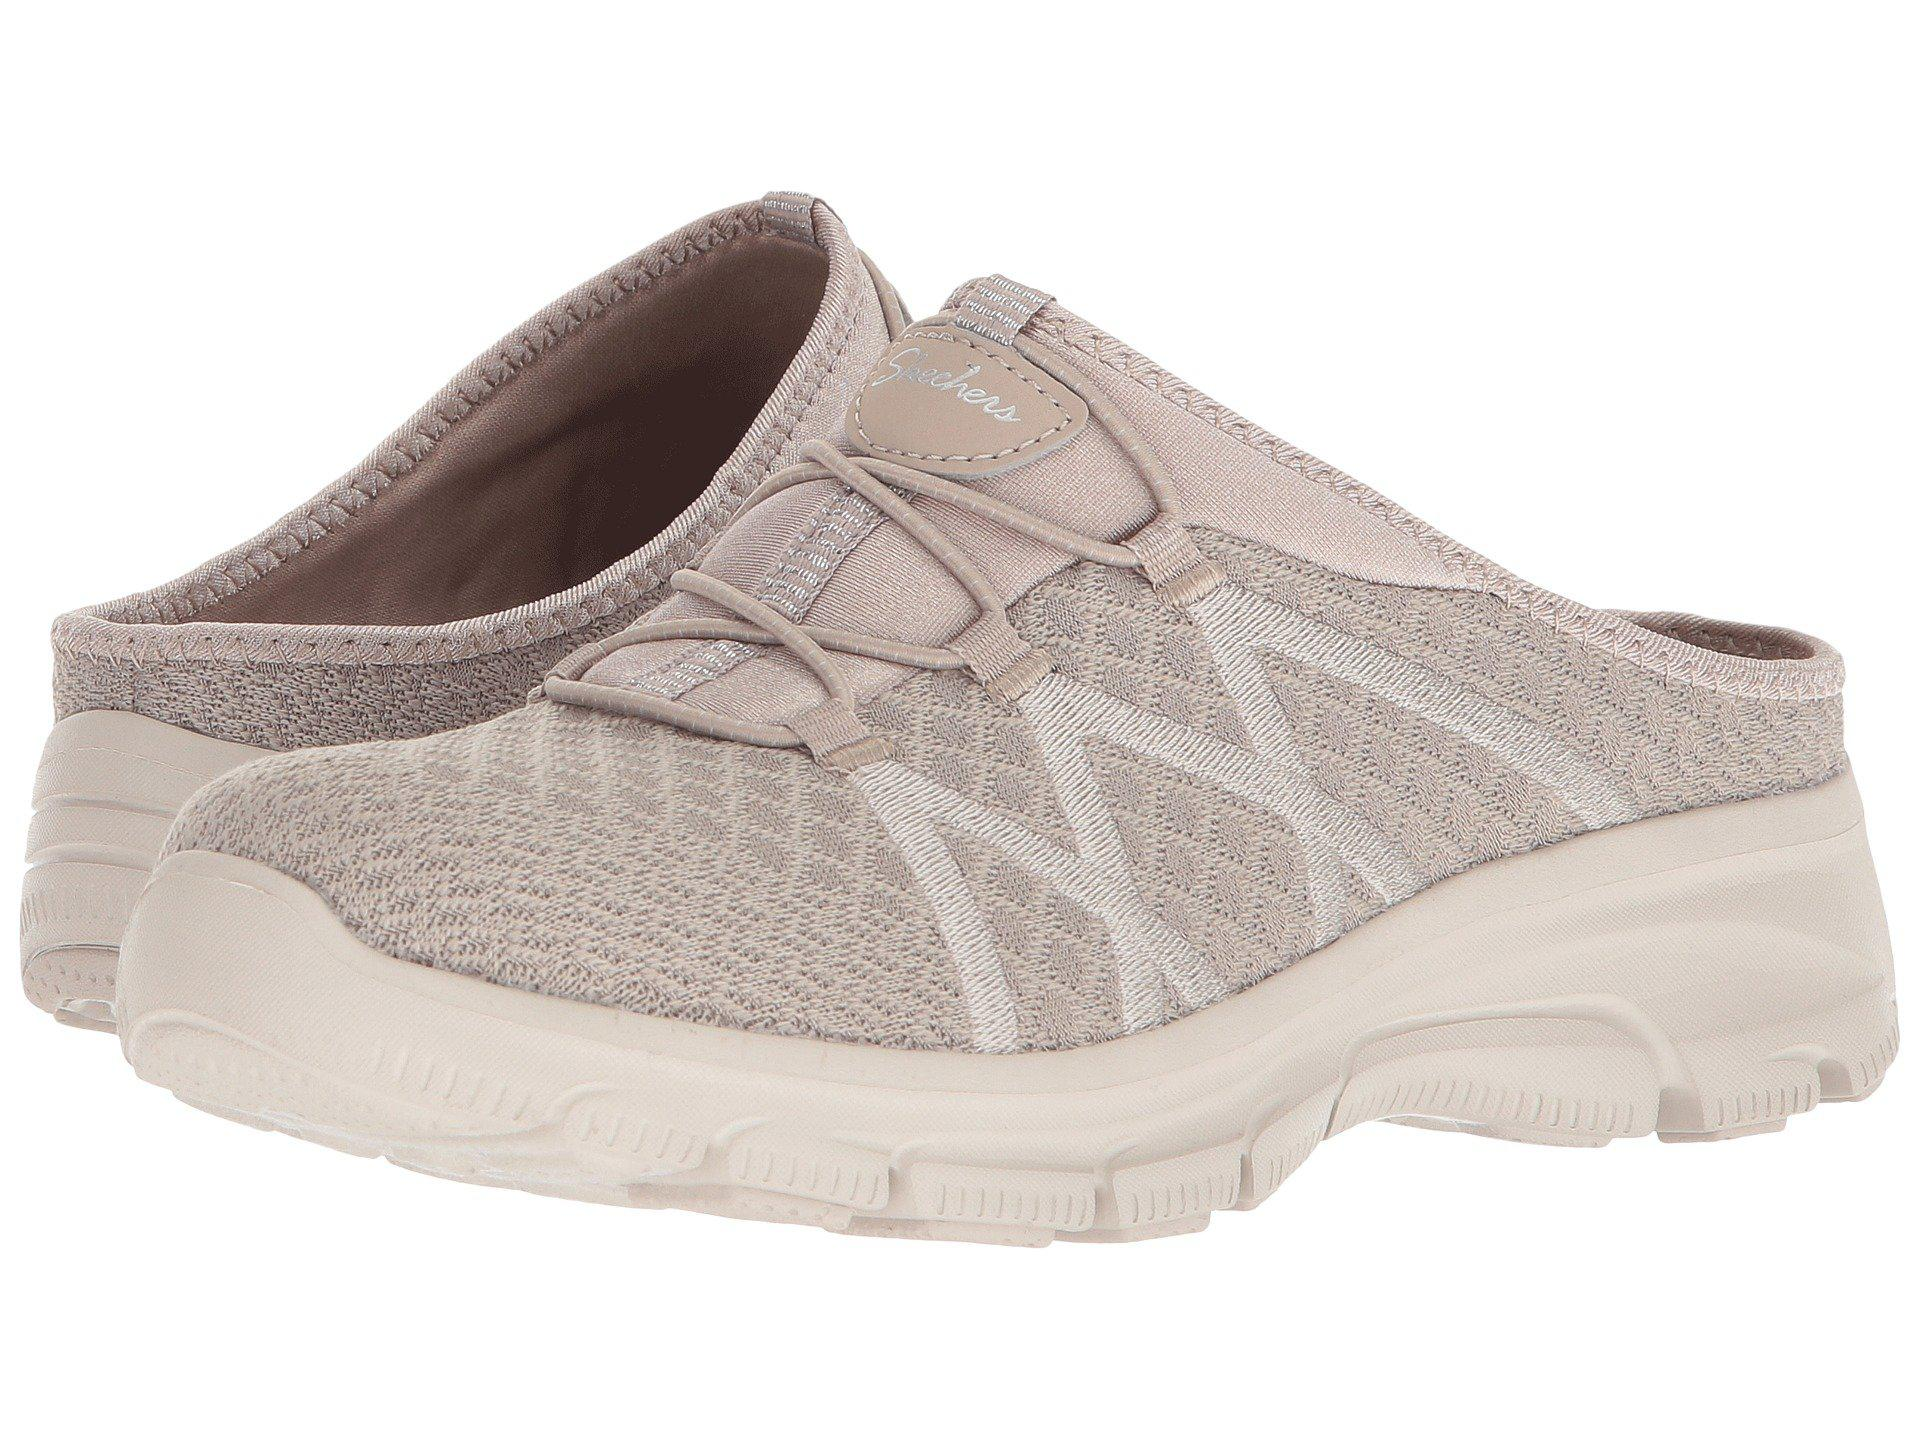 Skecherseasy Va Knitty Graveleuse Style De Mode À Vendre Sites De Dédouanement sneakernews k4Do1pfzJ1